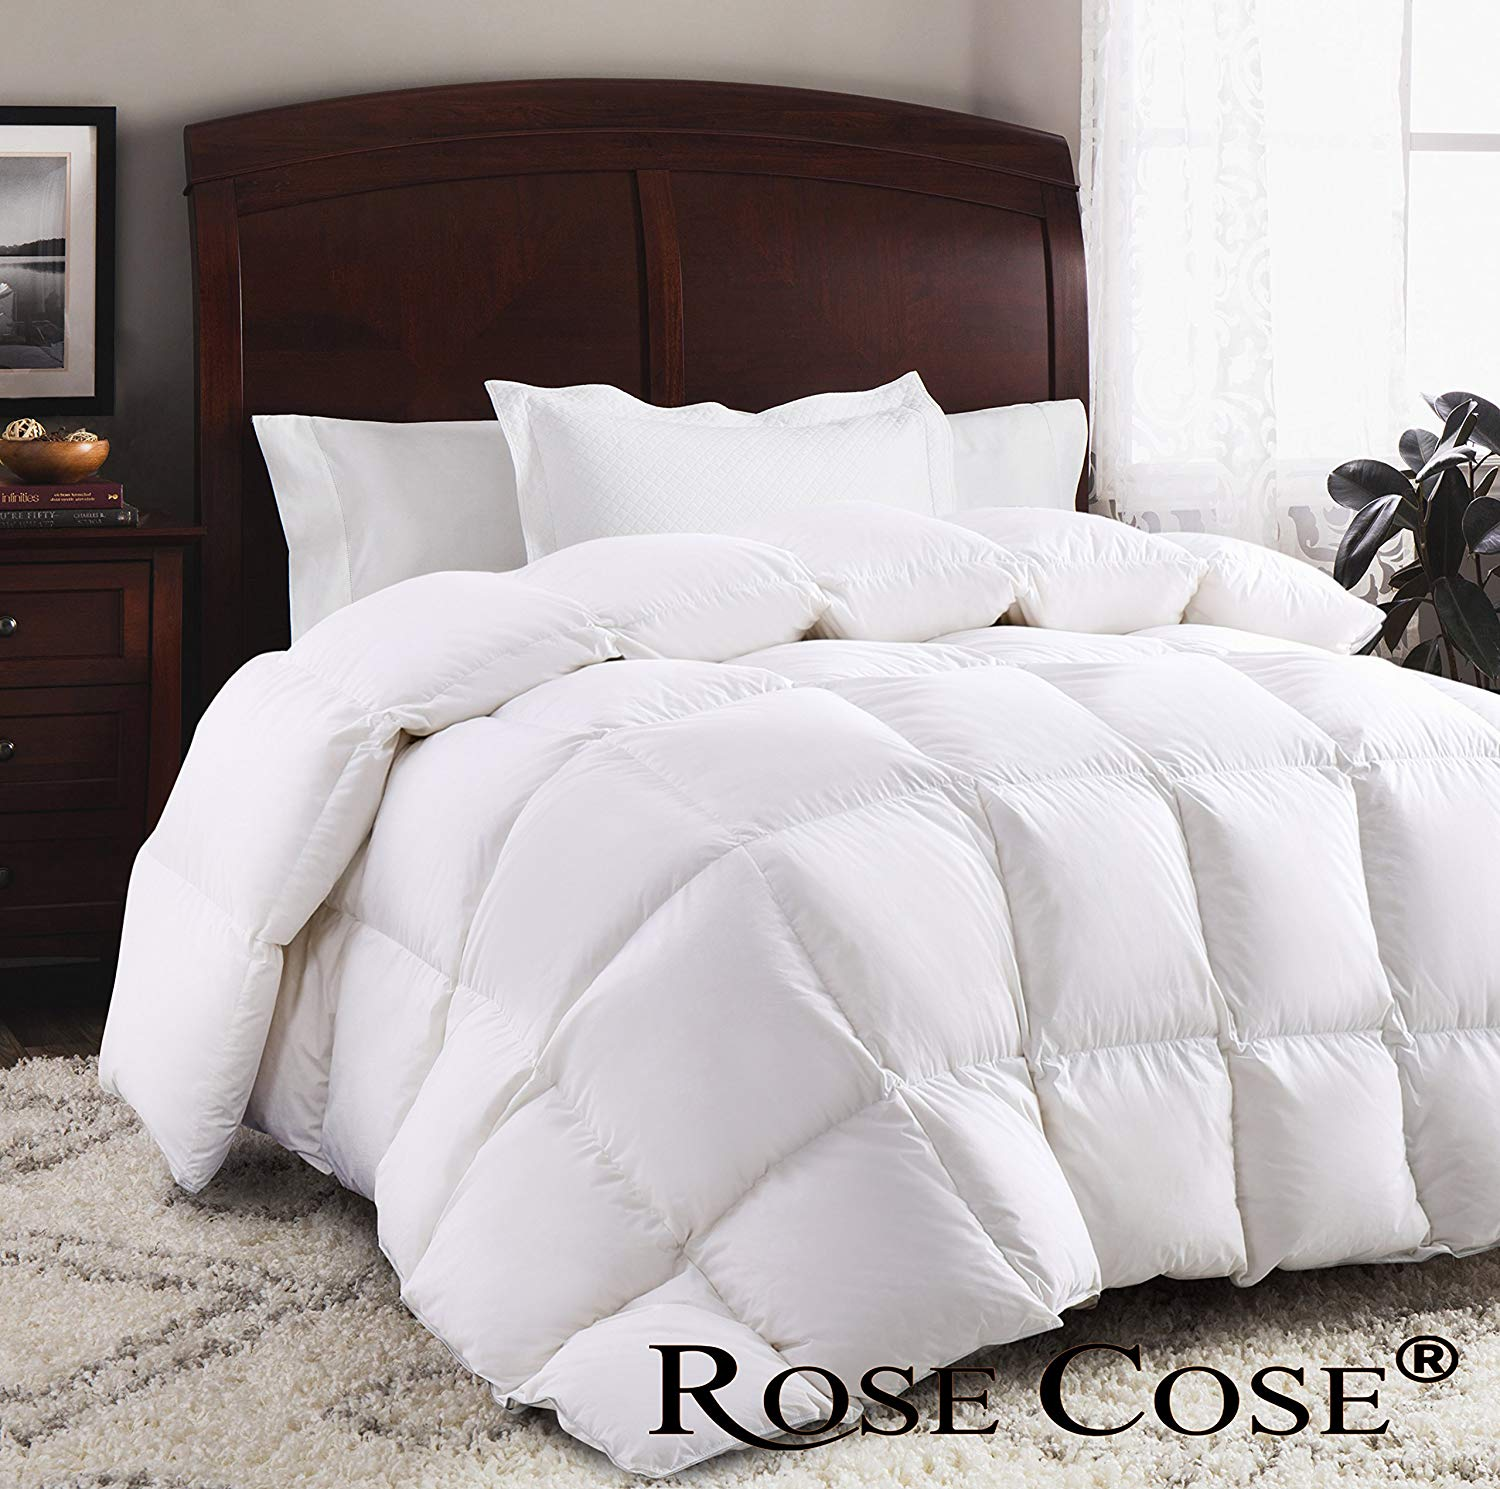 ROSECOSE Best Down Comforter Reviews by www.snoremagazine.com